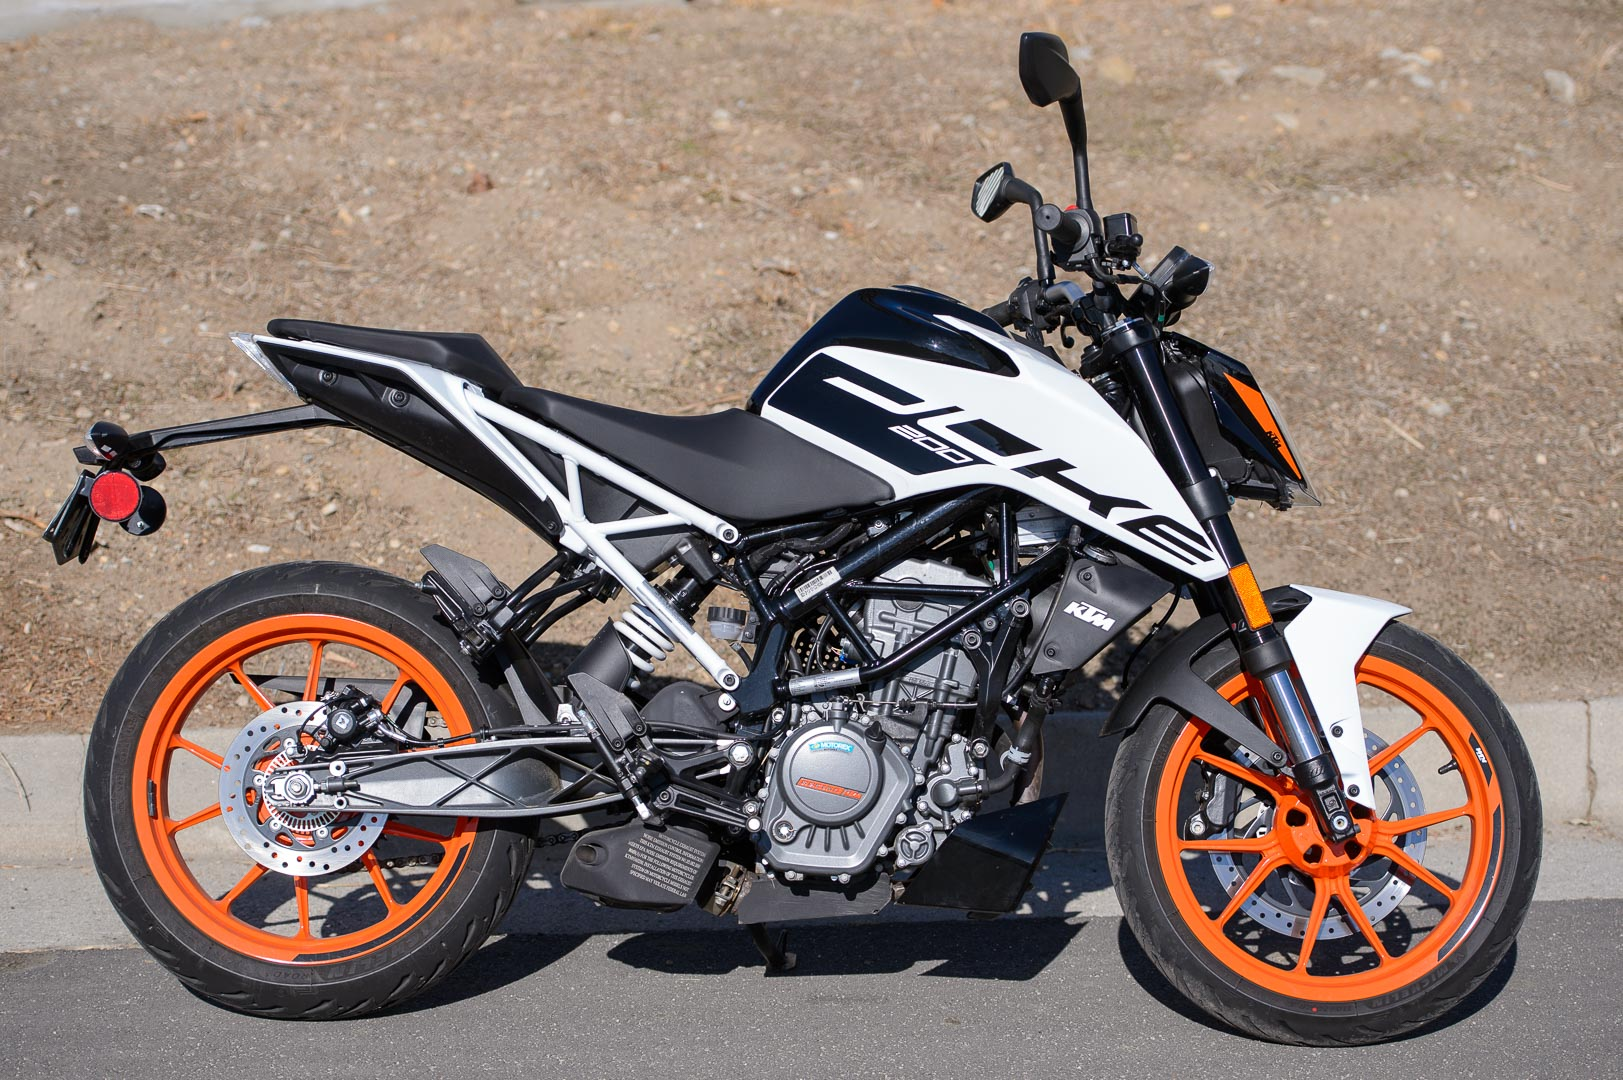 2020 KTM 200 Duke Test: Price